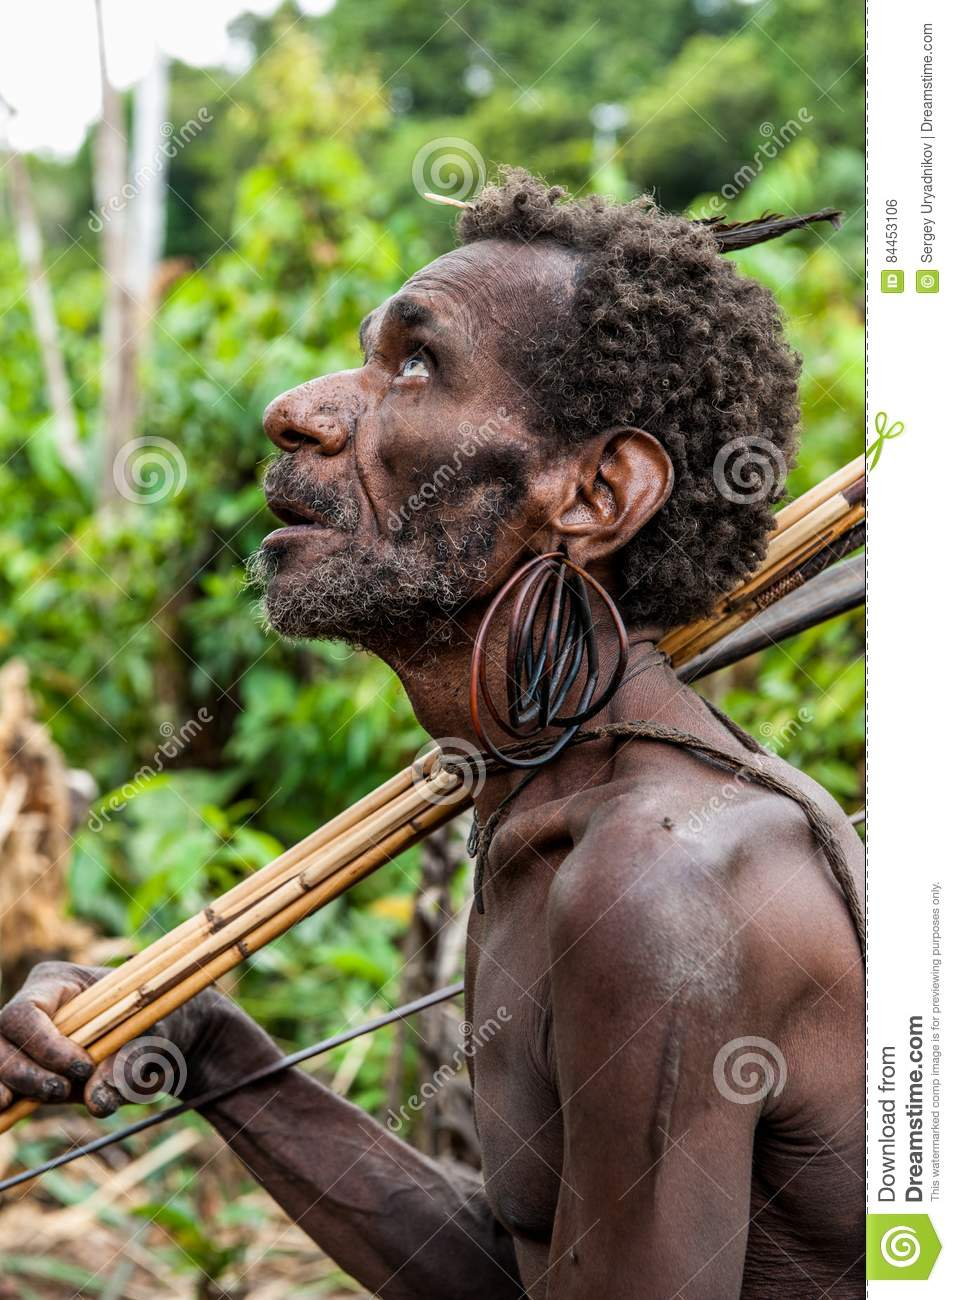 korowai tribe from new guinea essay Several tribes previously not known to science were discovered in papua new guea only at the end of the last century one of them was the korowai tribe, living in the vicinity of the marauke city korowai live high up in tree houses, built out of tree bark and palm leaves at a height of 20-50 meters.